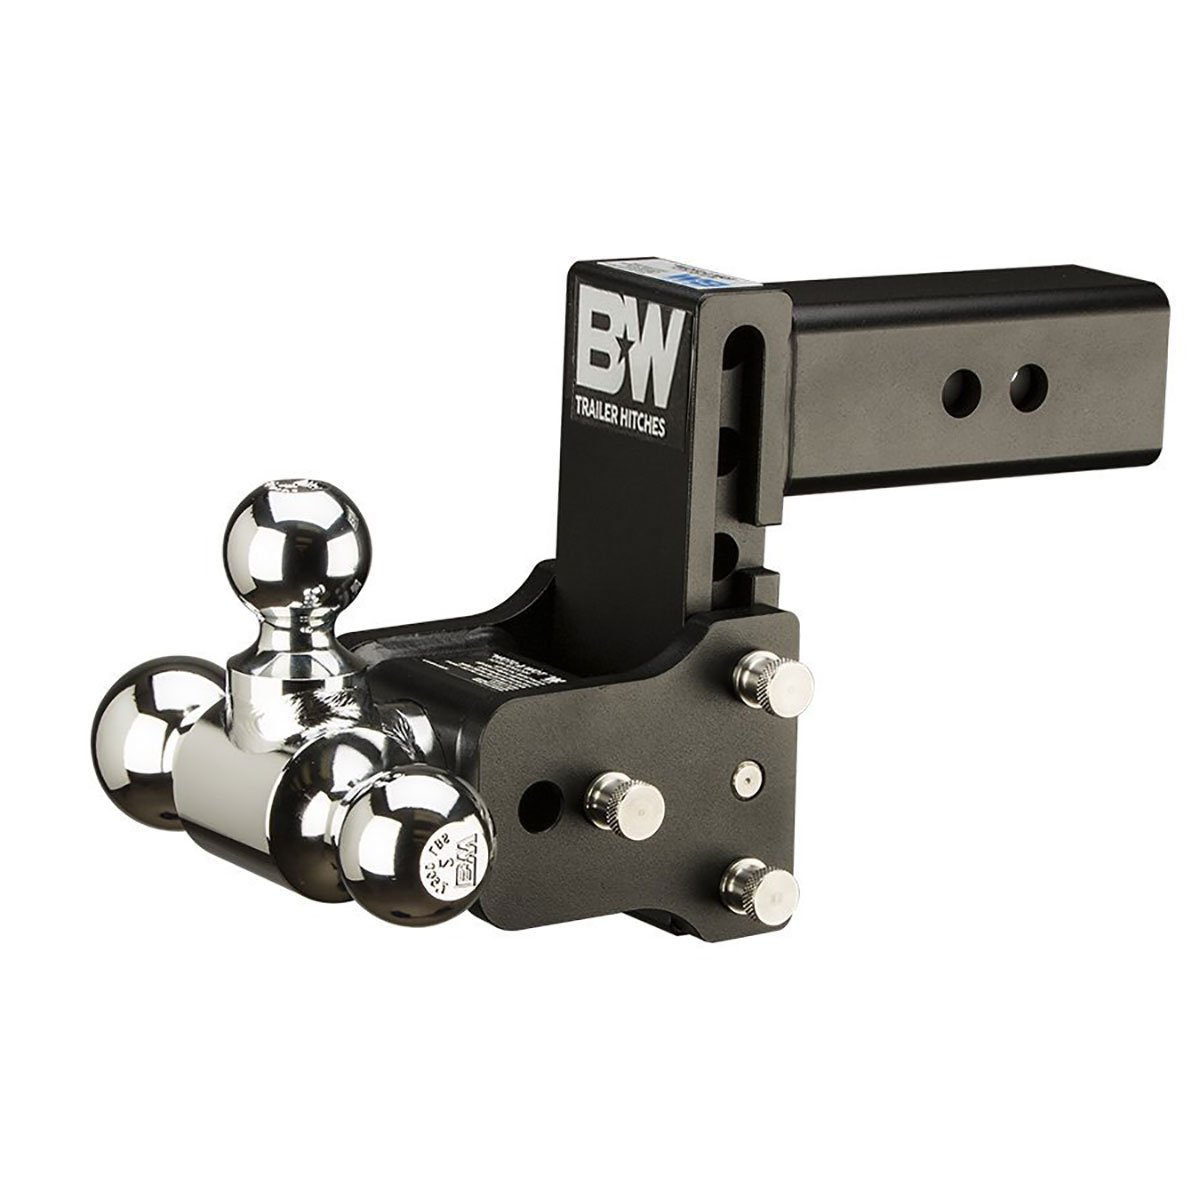 B/&W Trailer Hitches Tow /& Stow 5in Drop 4.5in Rise 1 7//8x2x2 5//16in Triple Ball Size Hitch